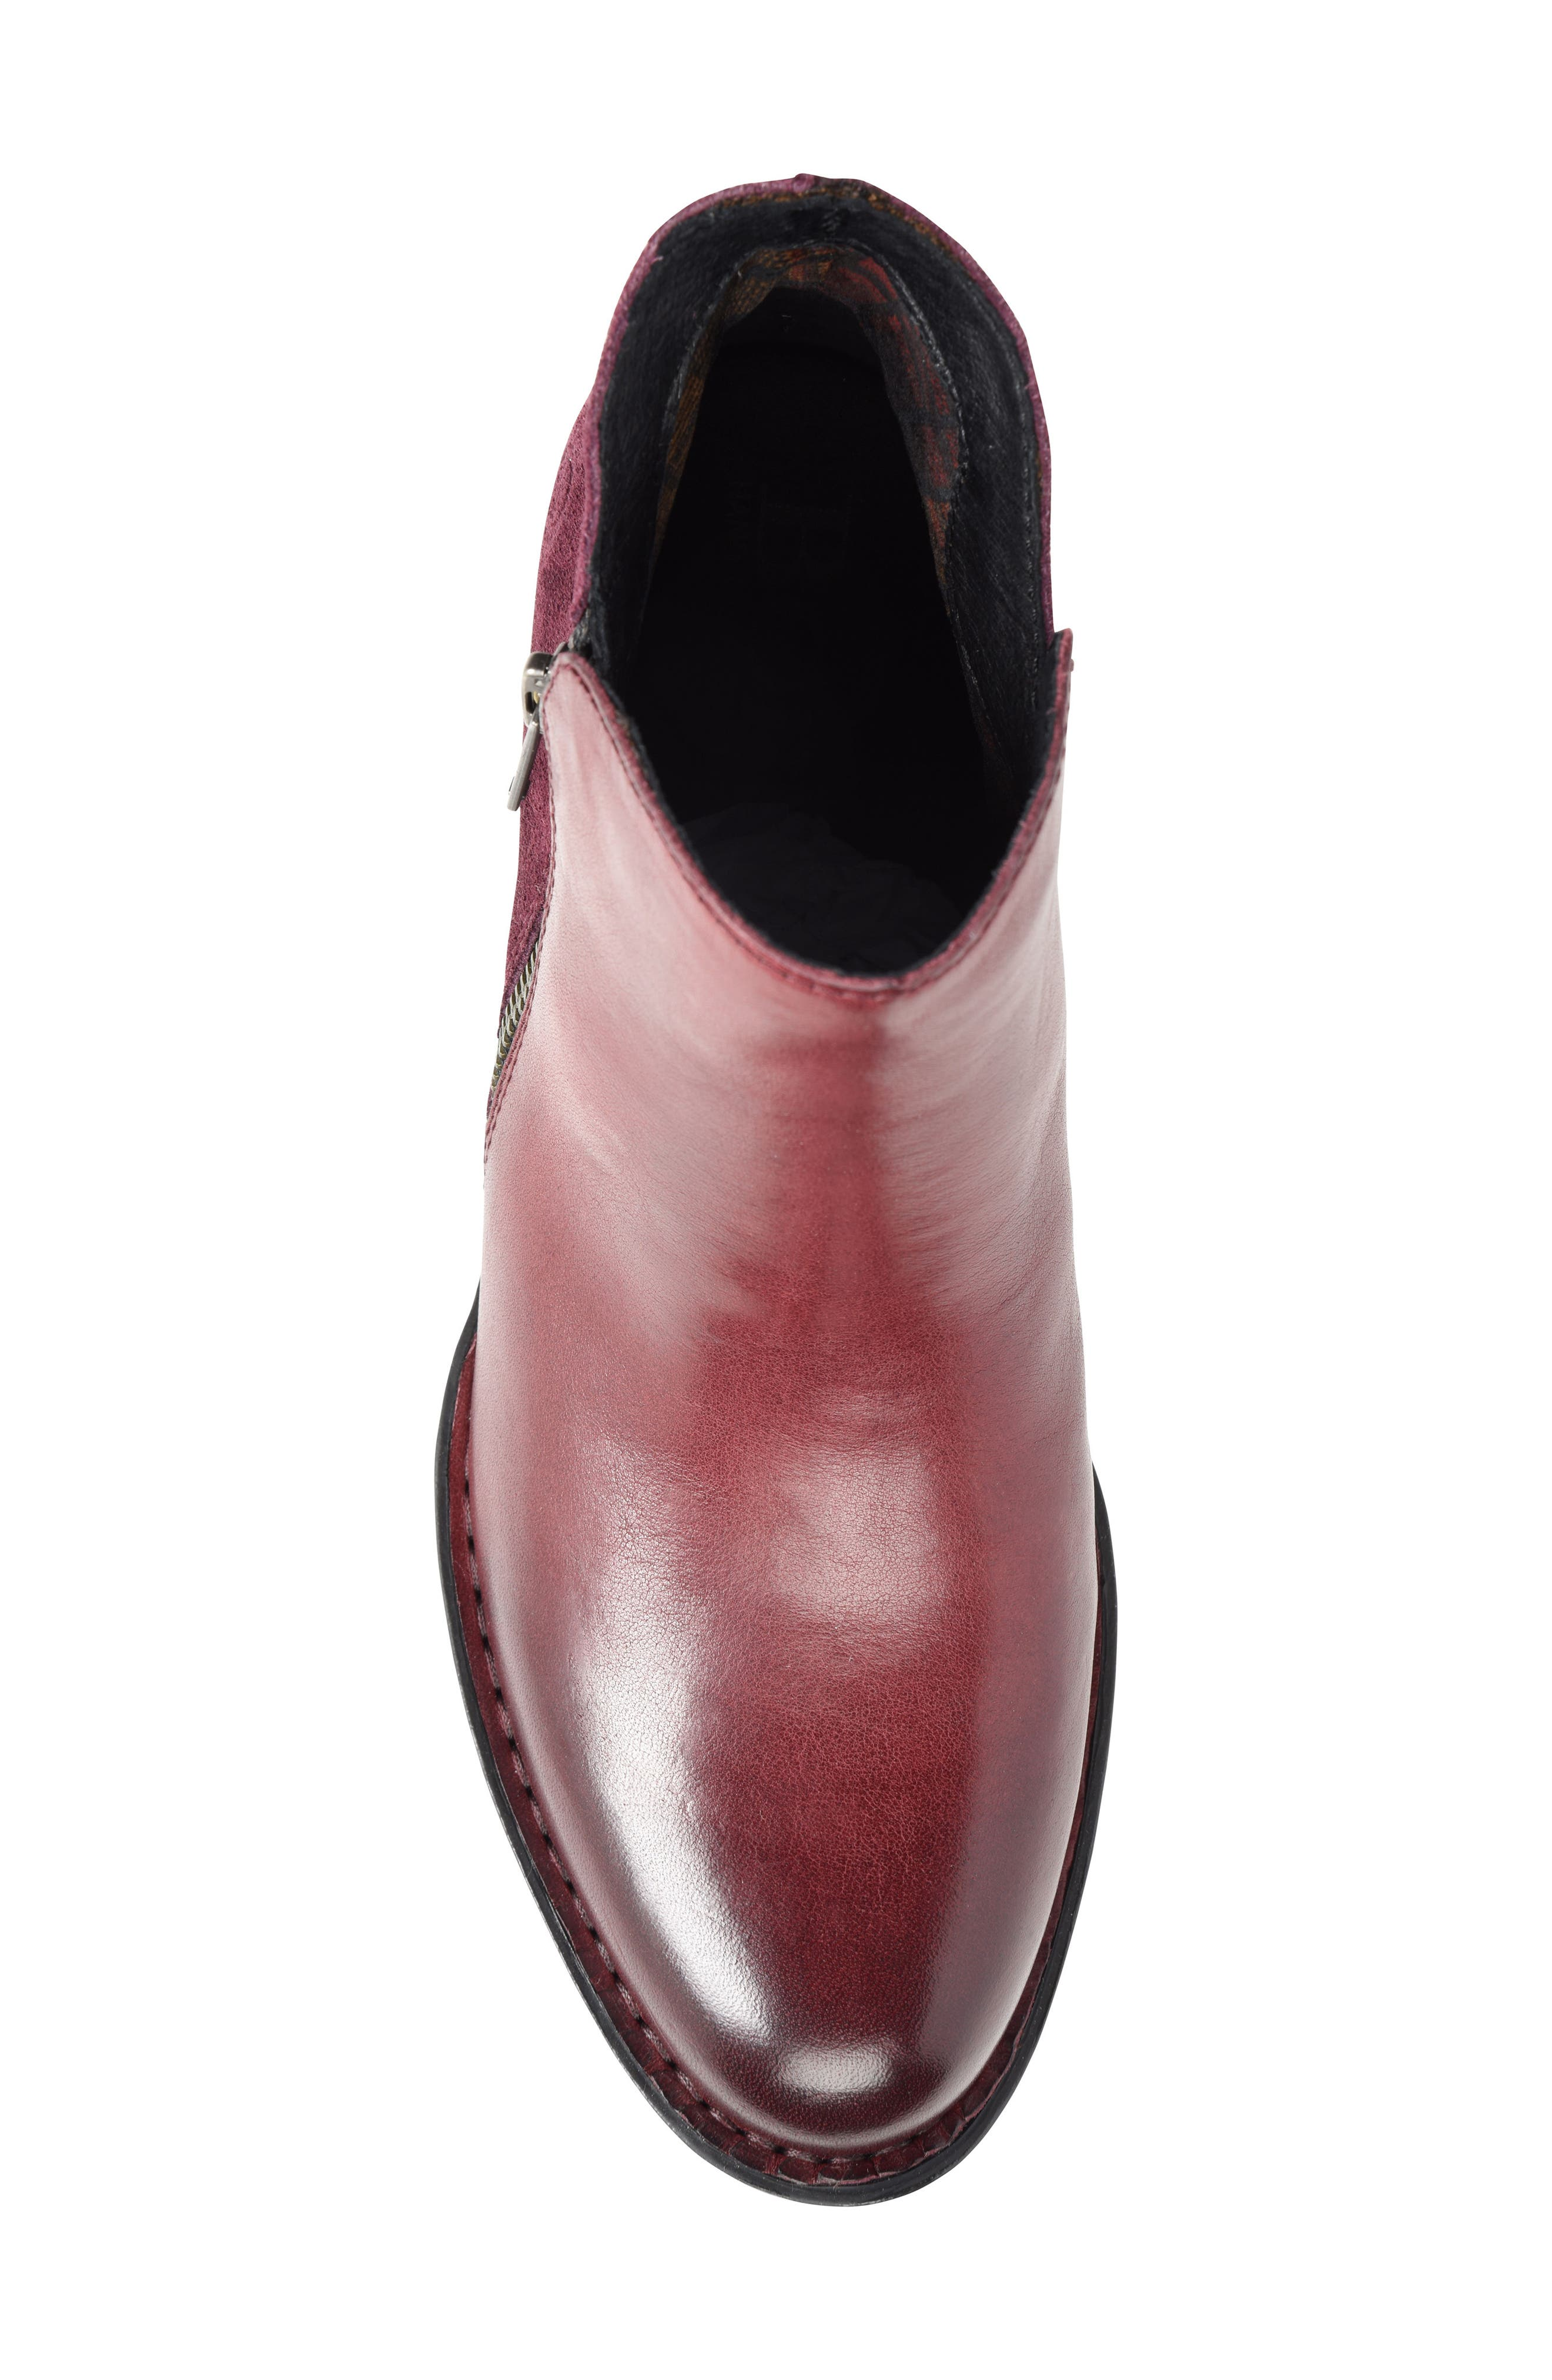 Keefe Bootie,                             Alternate thumbnail 5, color,                             Burgundy/ Purple Combo